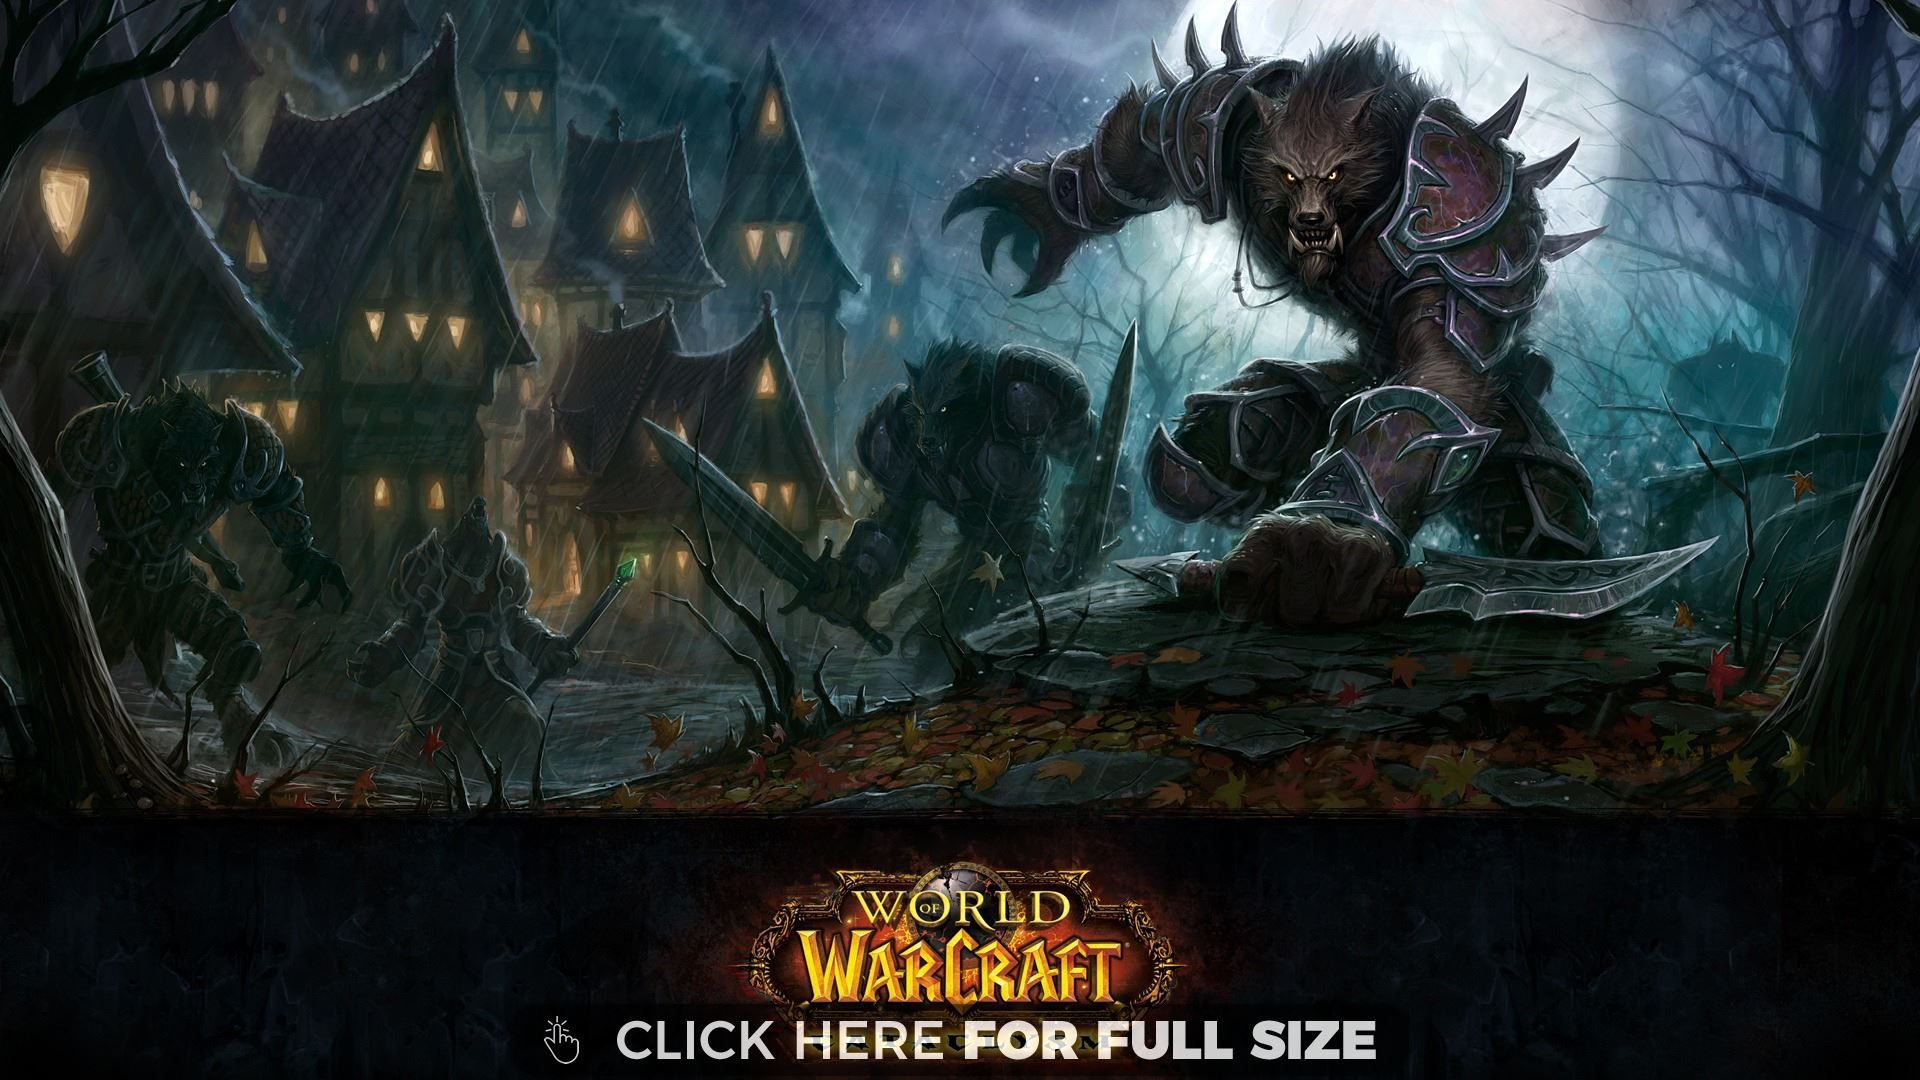 World Of Warcraft Hd 1080p 812 Wallpaper Desktop Wallpapers